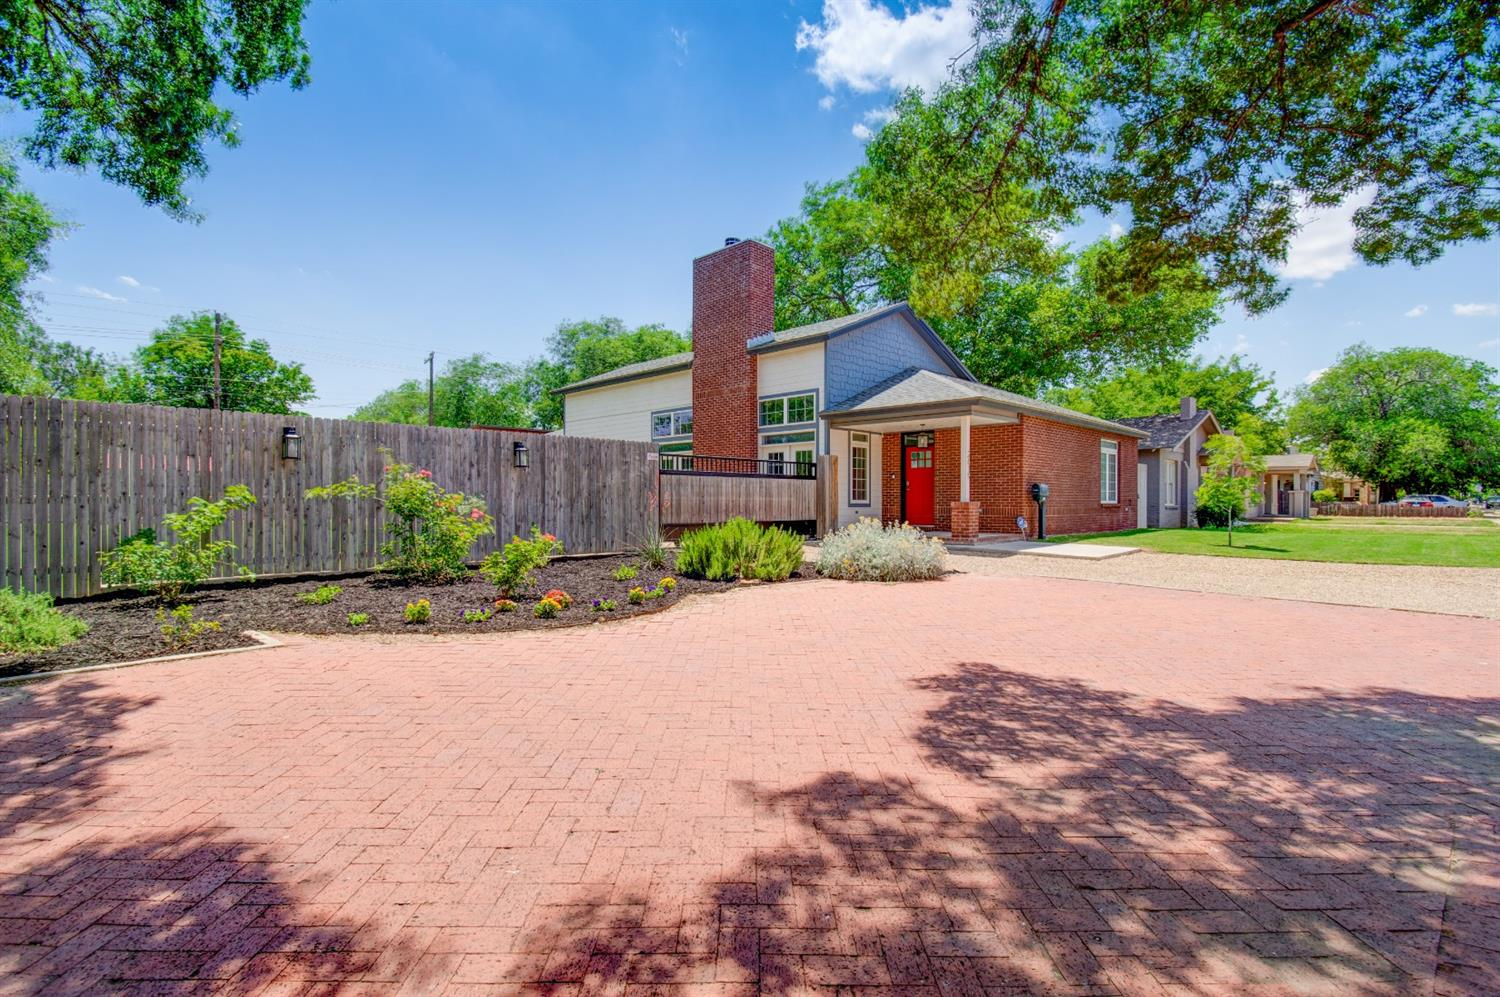 This custom home was built in 2017 on two lots, that are separate parcels, making this listing the most versatile and exciting  property in Tech Terrace. The soaring 10 ft ceilings in the family room with a cozy fireplace and stained concrete floors, make this a perfect family home, Texas Tech rental, or AirBnB Oasis. The connecting lot next door could be a phase II of wherever your imagination takes you! Its all tucked in behind a 7 ft. privacy fence with an electric gate, and covered RV parking with hookups. There is a safe room engineered by the Tech wind department, and more storage than you have EVER seen. This house is something to see!